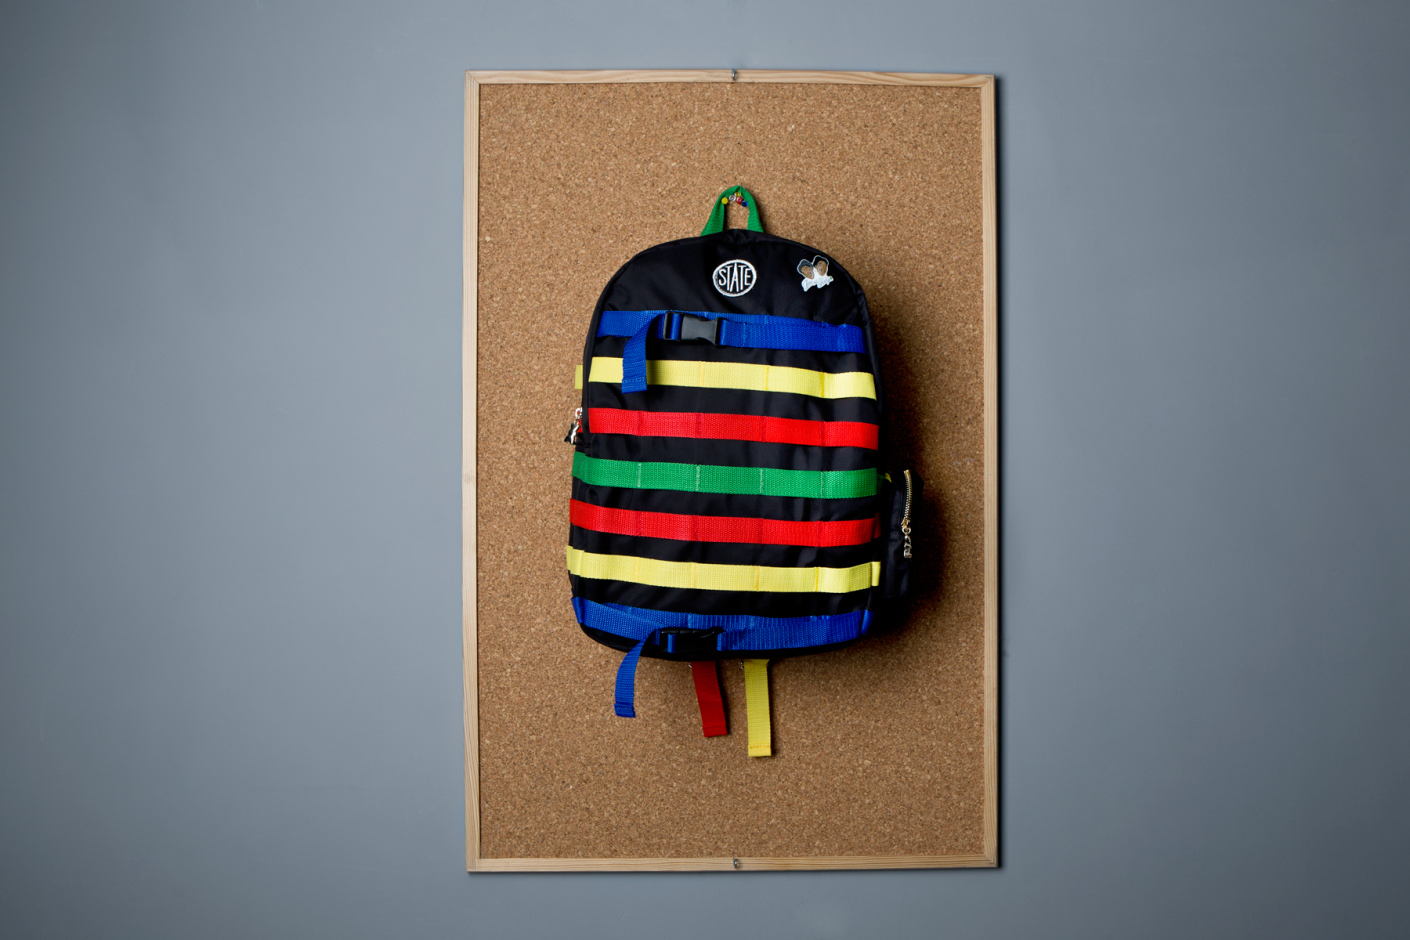 dee and ricky 2014 spring summer backpacks and lego pins 3 State Bags x Dee & Ricky Summer 2014 Backpack Collection